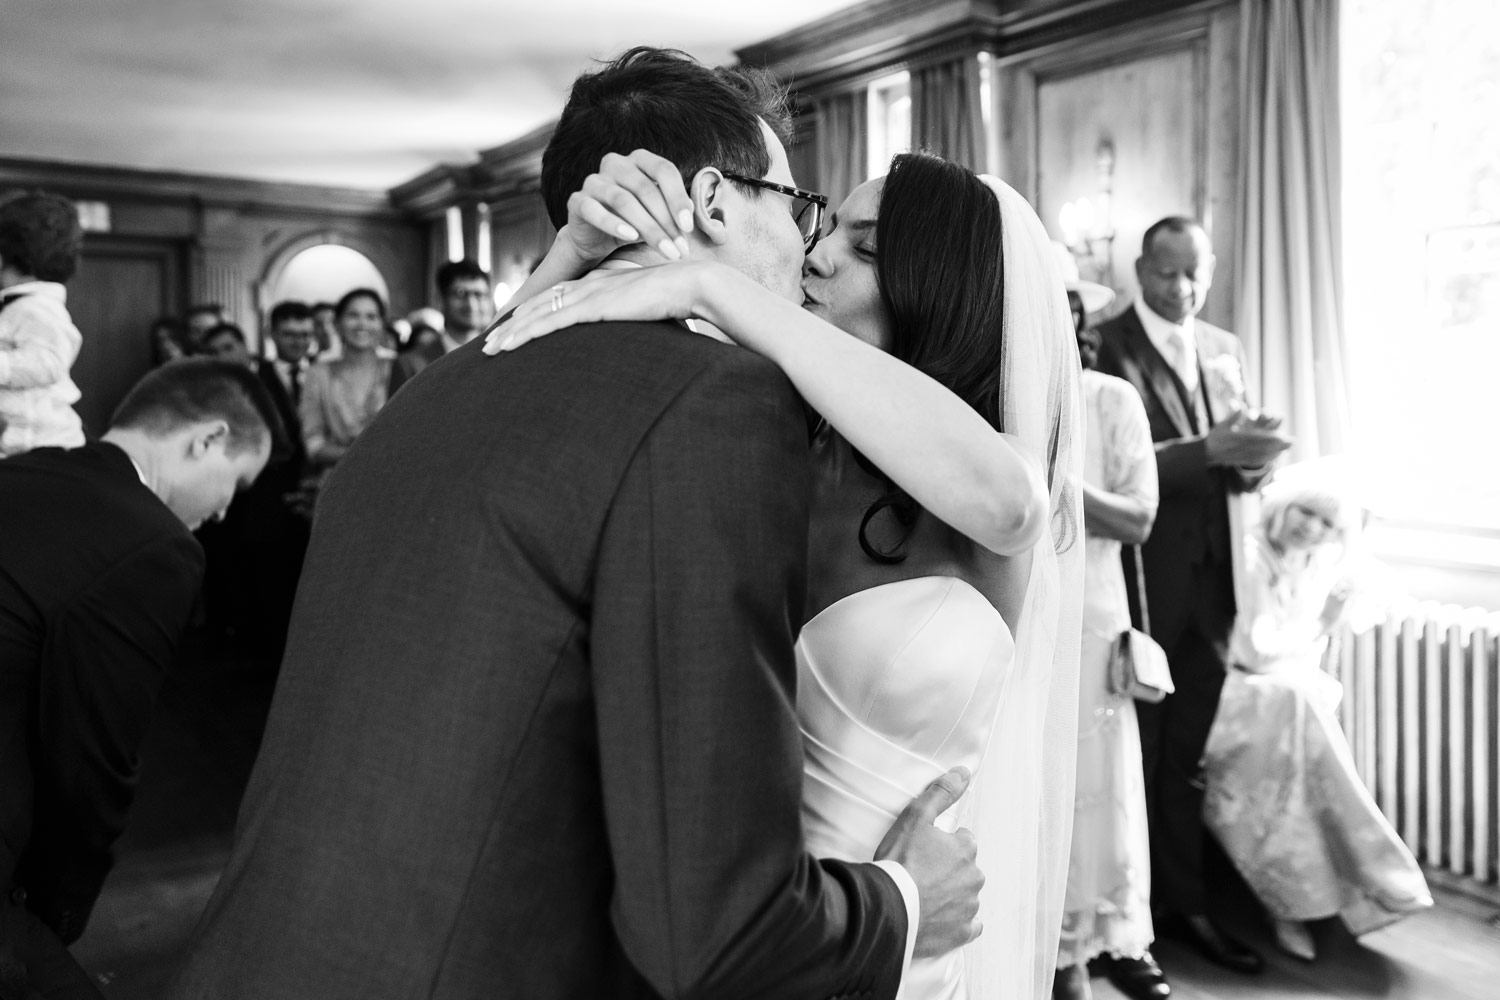 A wedding ceremony kiss at Burgh House Museum in Hampstead, London - wedding photographer